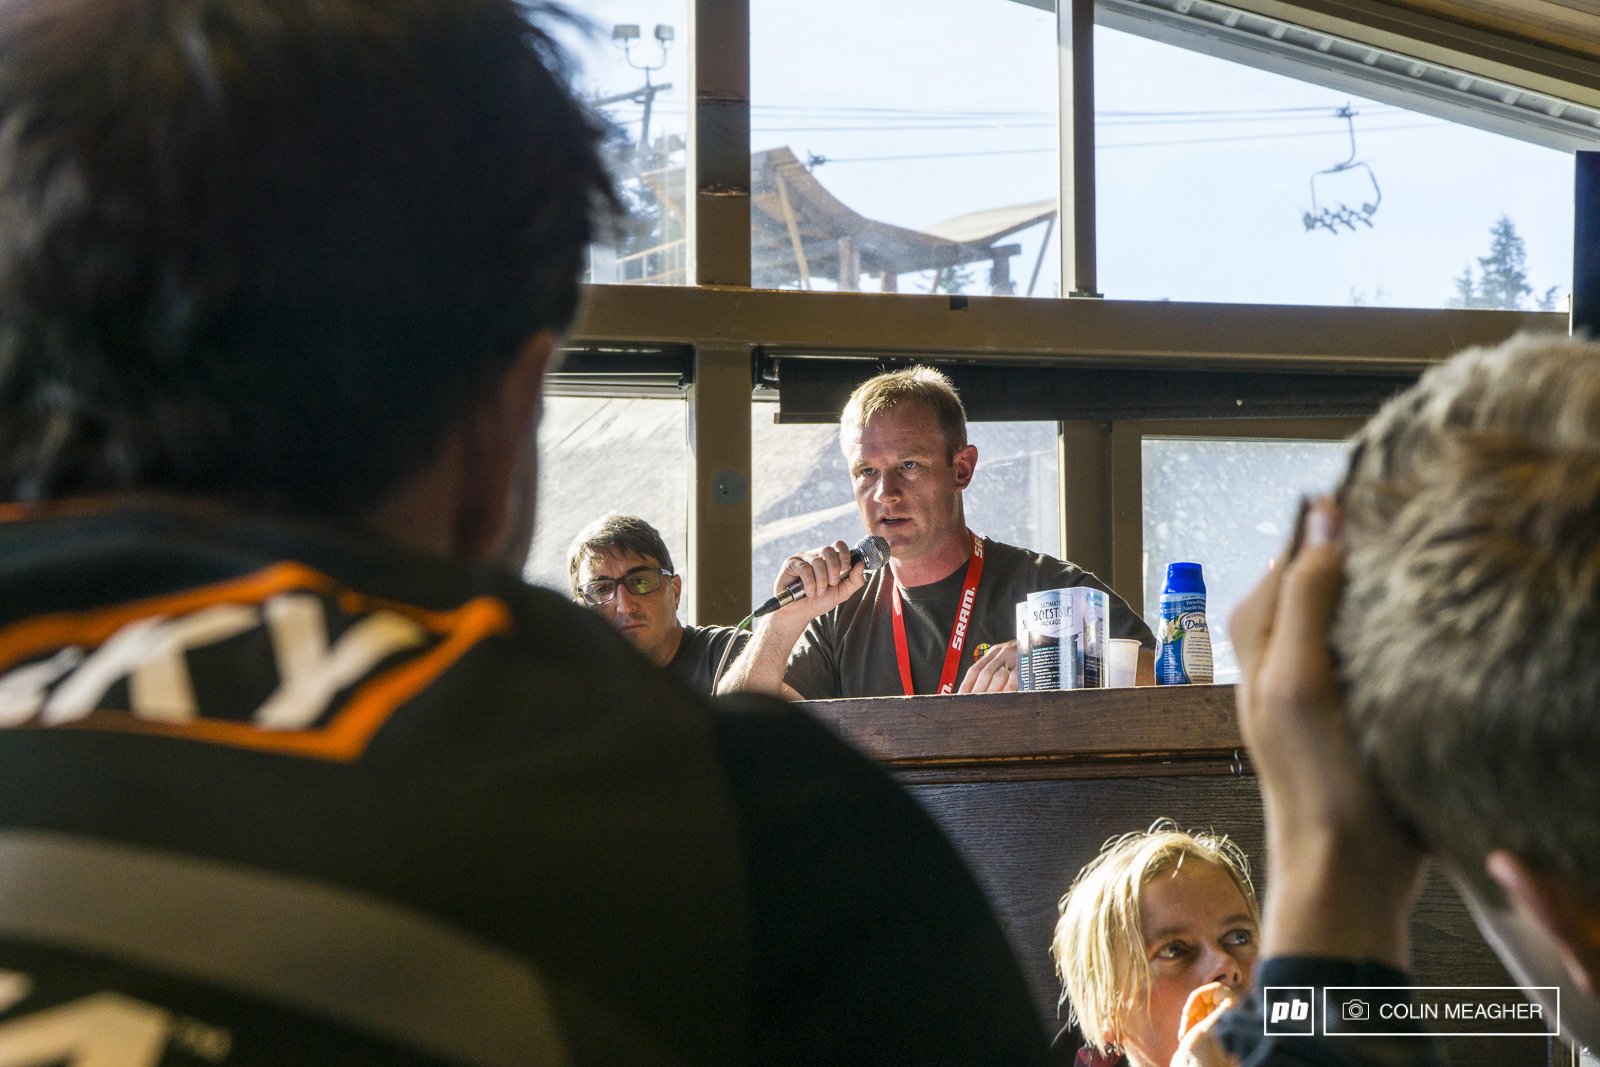 Darren Kinnaird describing the stages of the EWS to the racers at the rider s meeting on Friday morning.